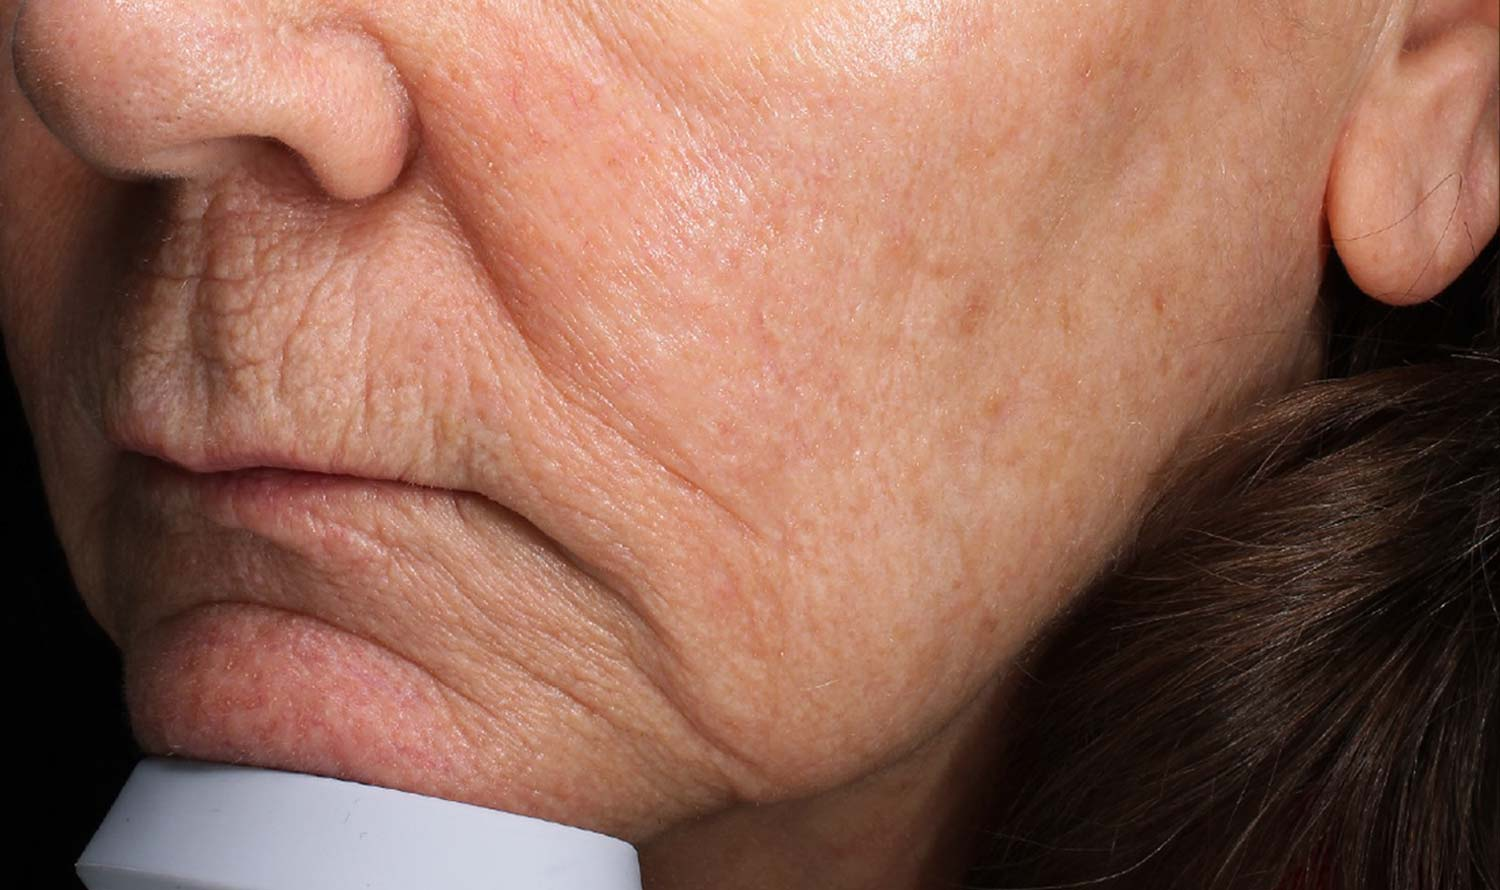 Before filler injections of woman's sagging jowl.